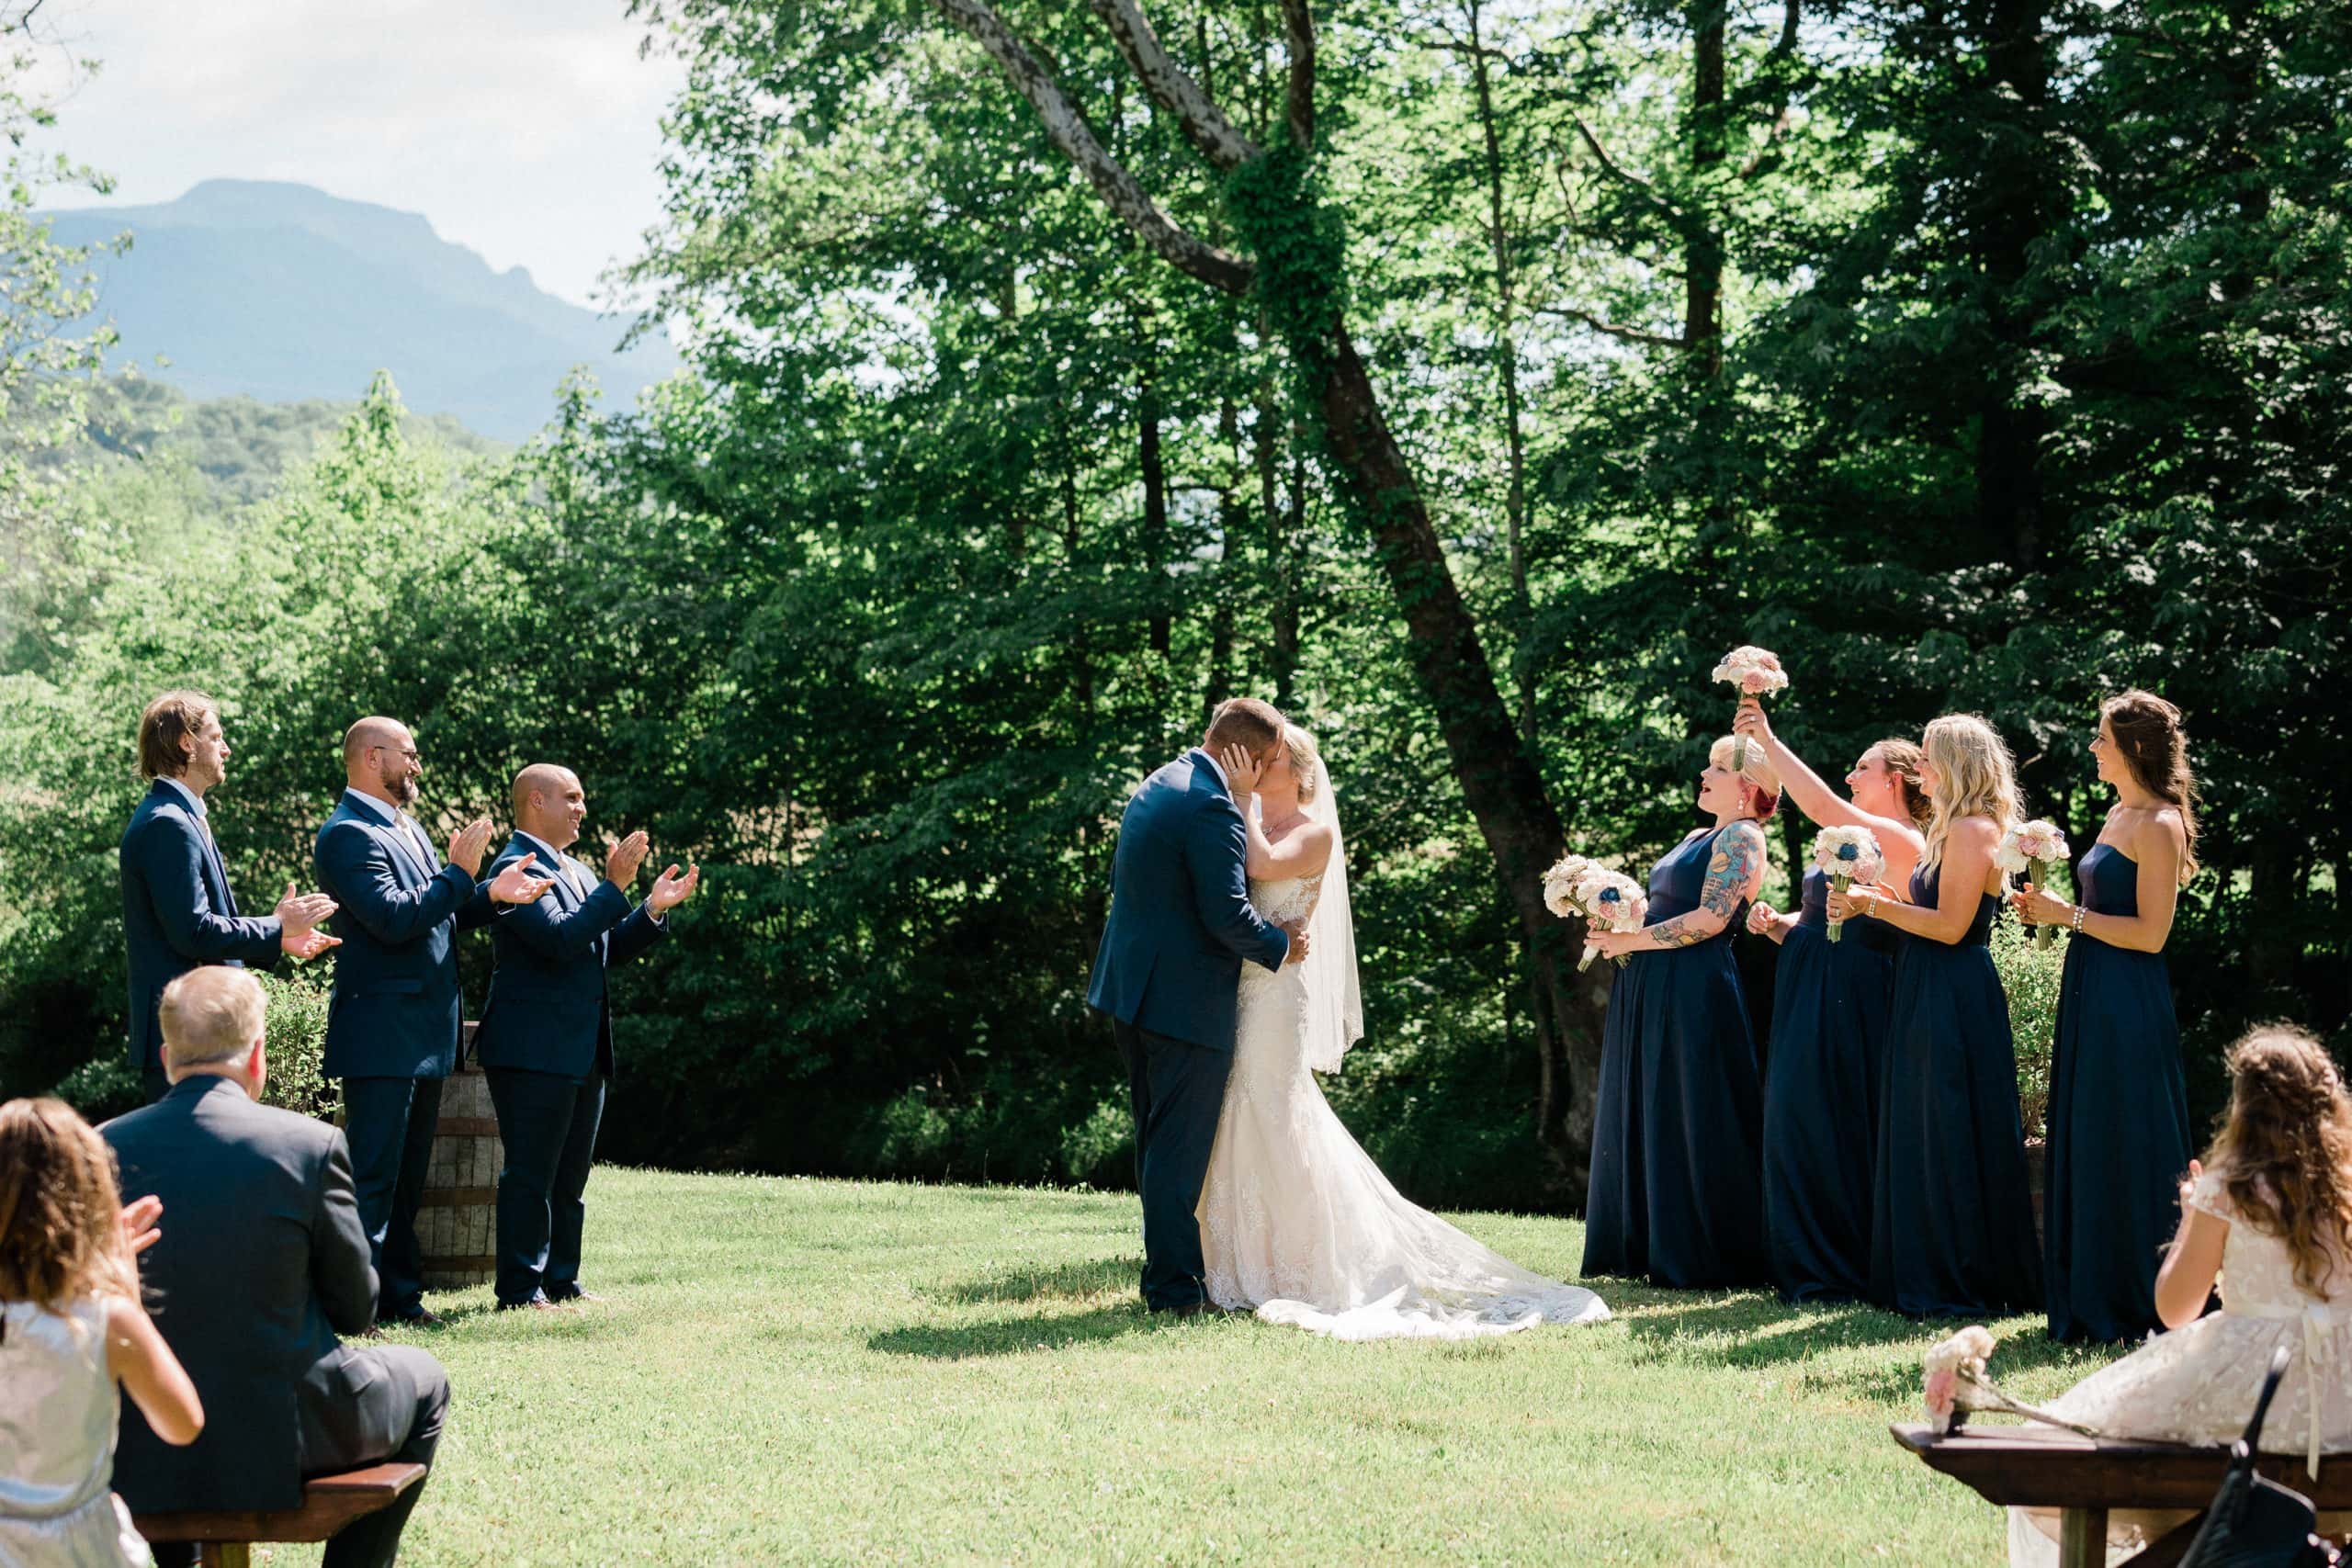 Wedding Ceremony on green grass with Granfather Mountain in the background